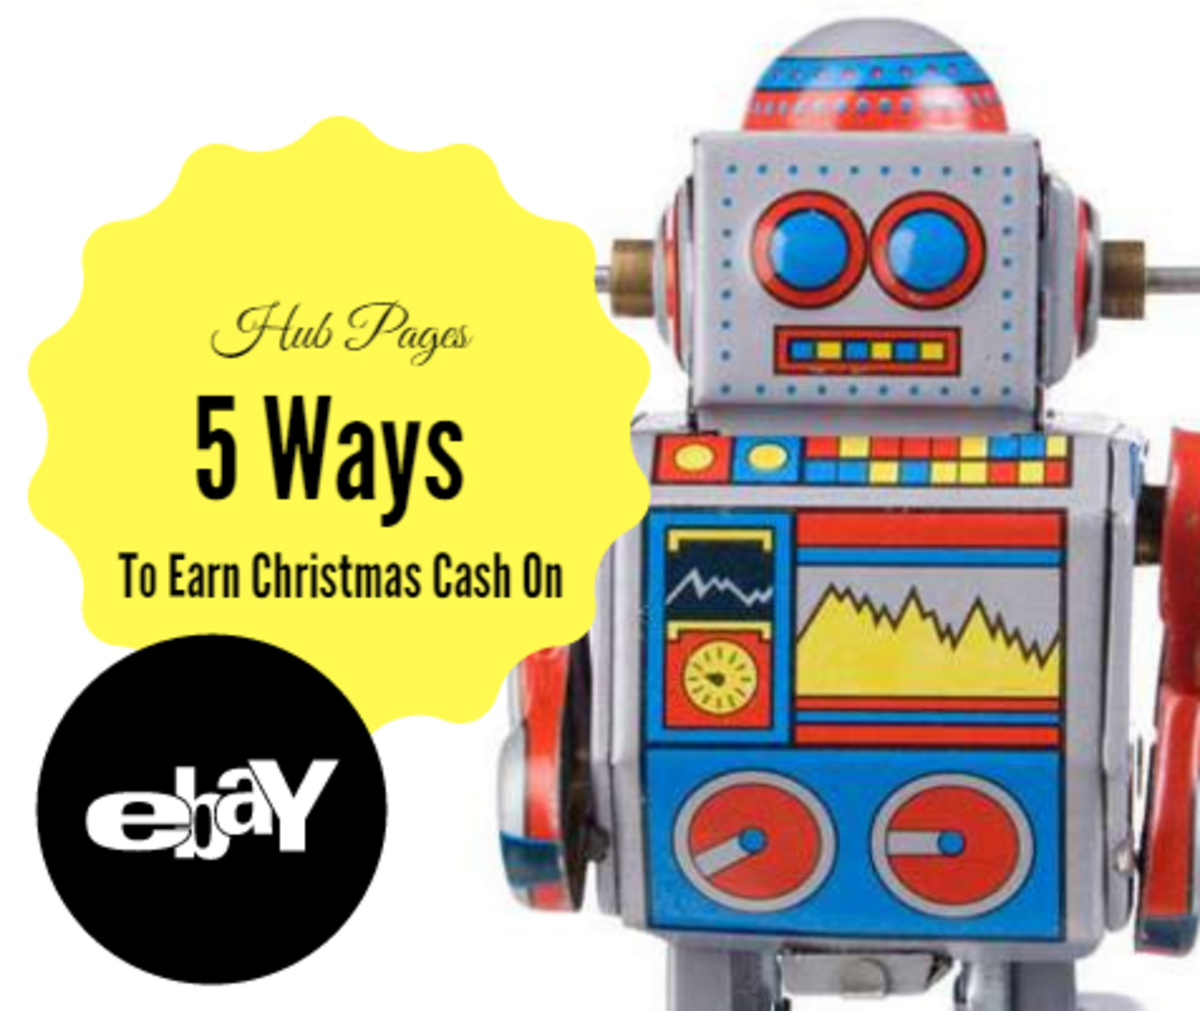 Read on to make a little more cash for Christmas shopping.